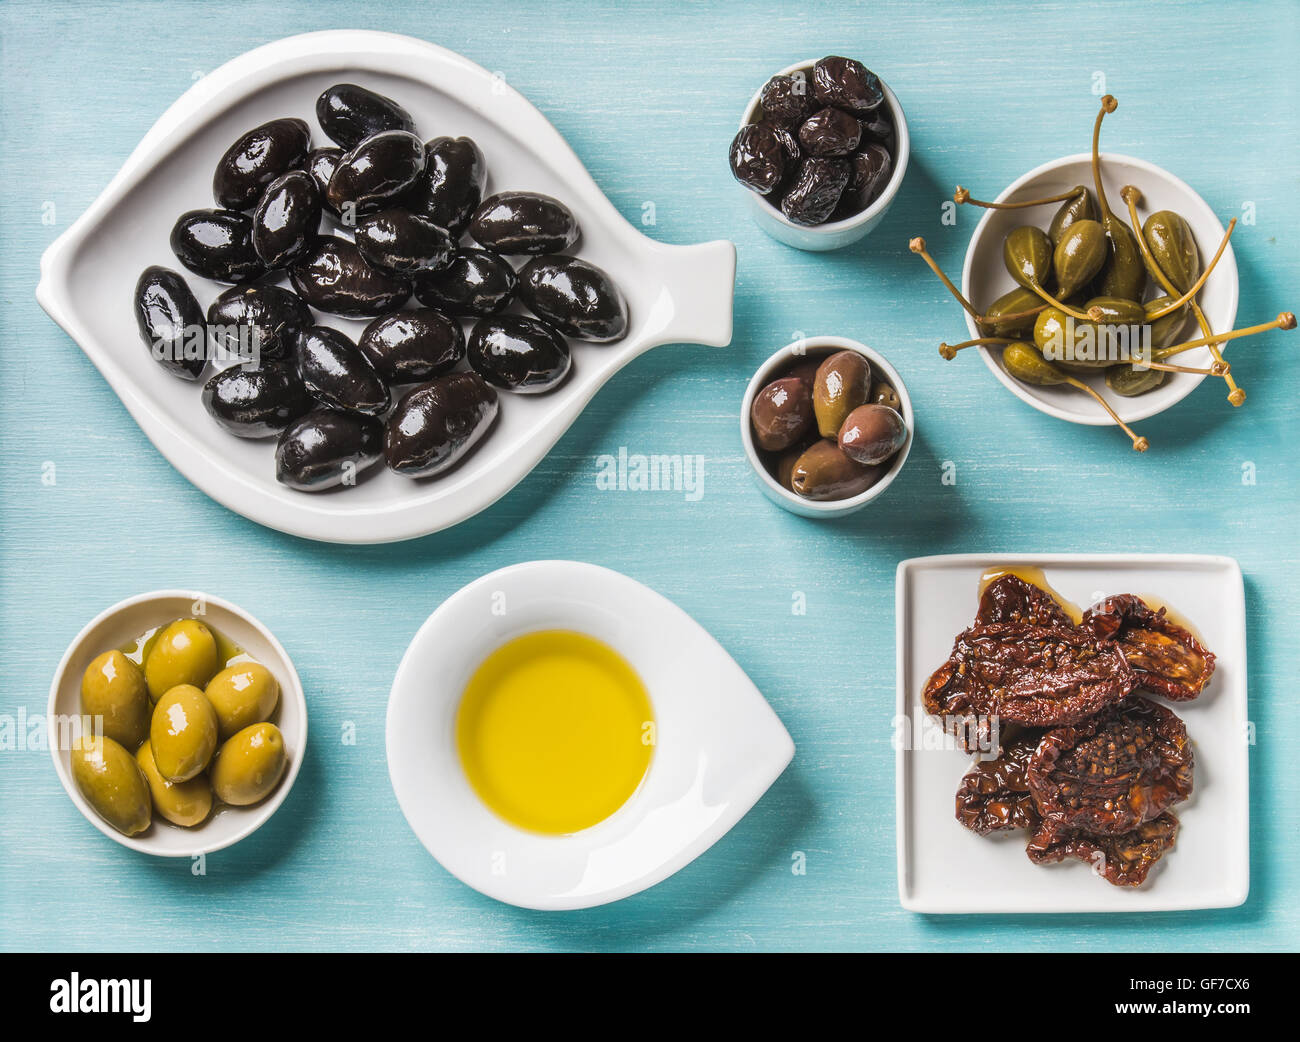 Mediterranean snack assortment. Black and green Greek olives, capers, olive oil, sun-dried tomatoes over turquoise - Stock Image